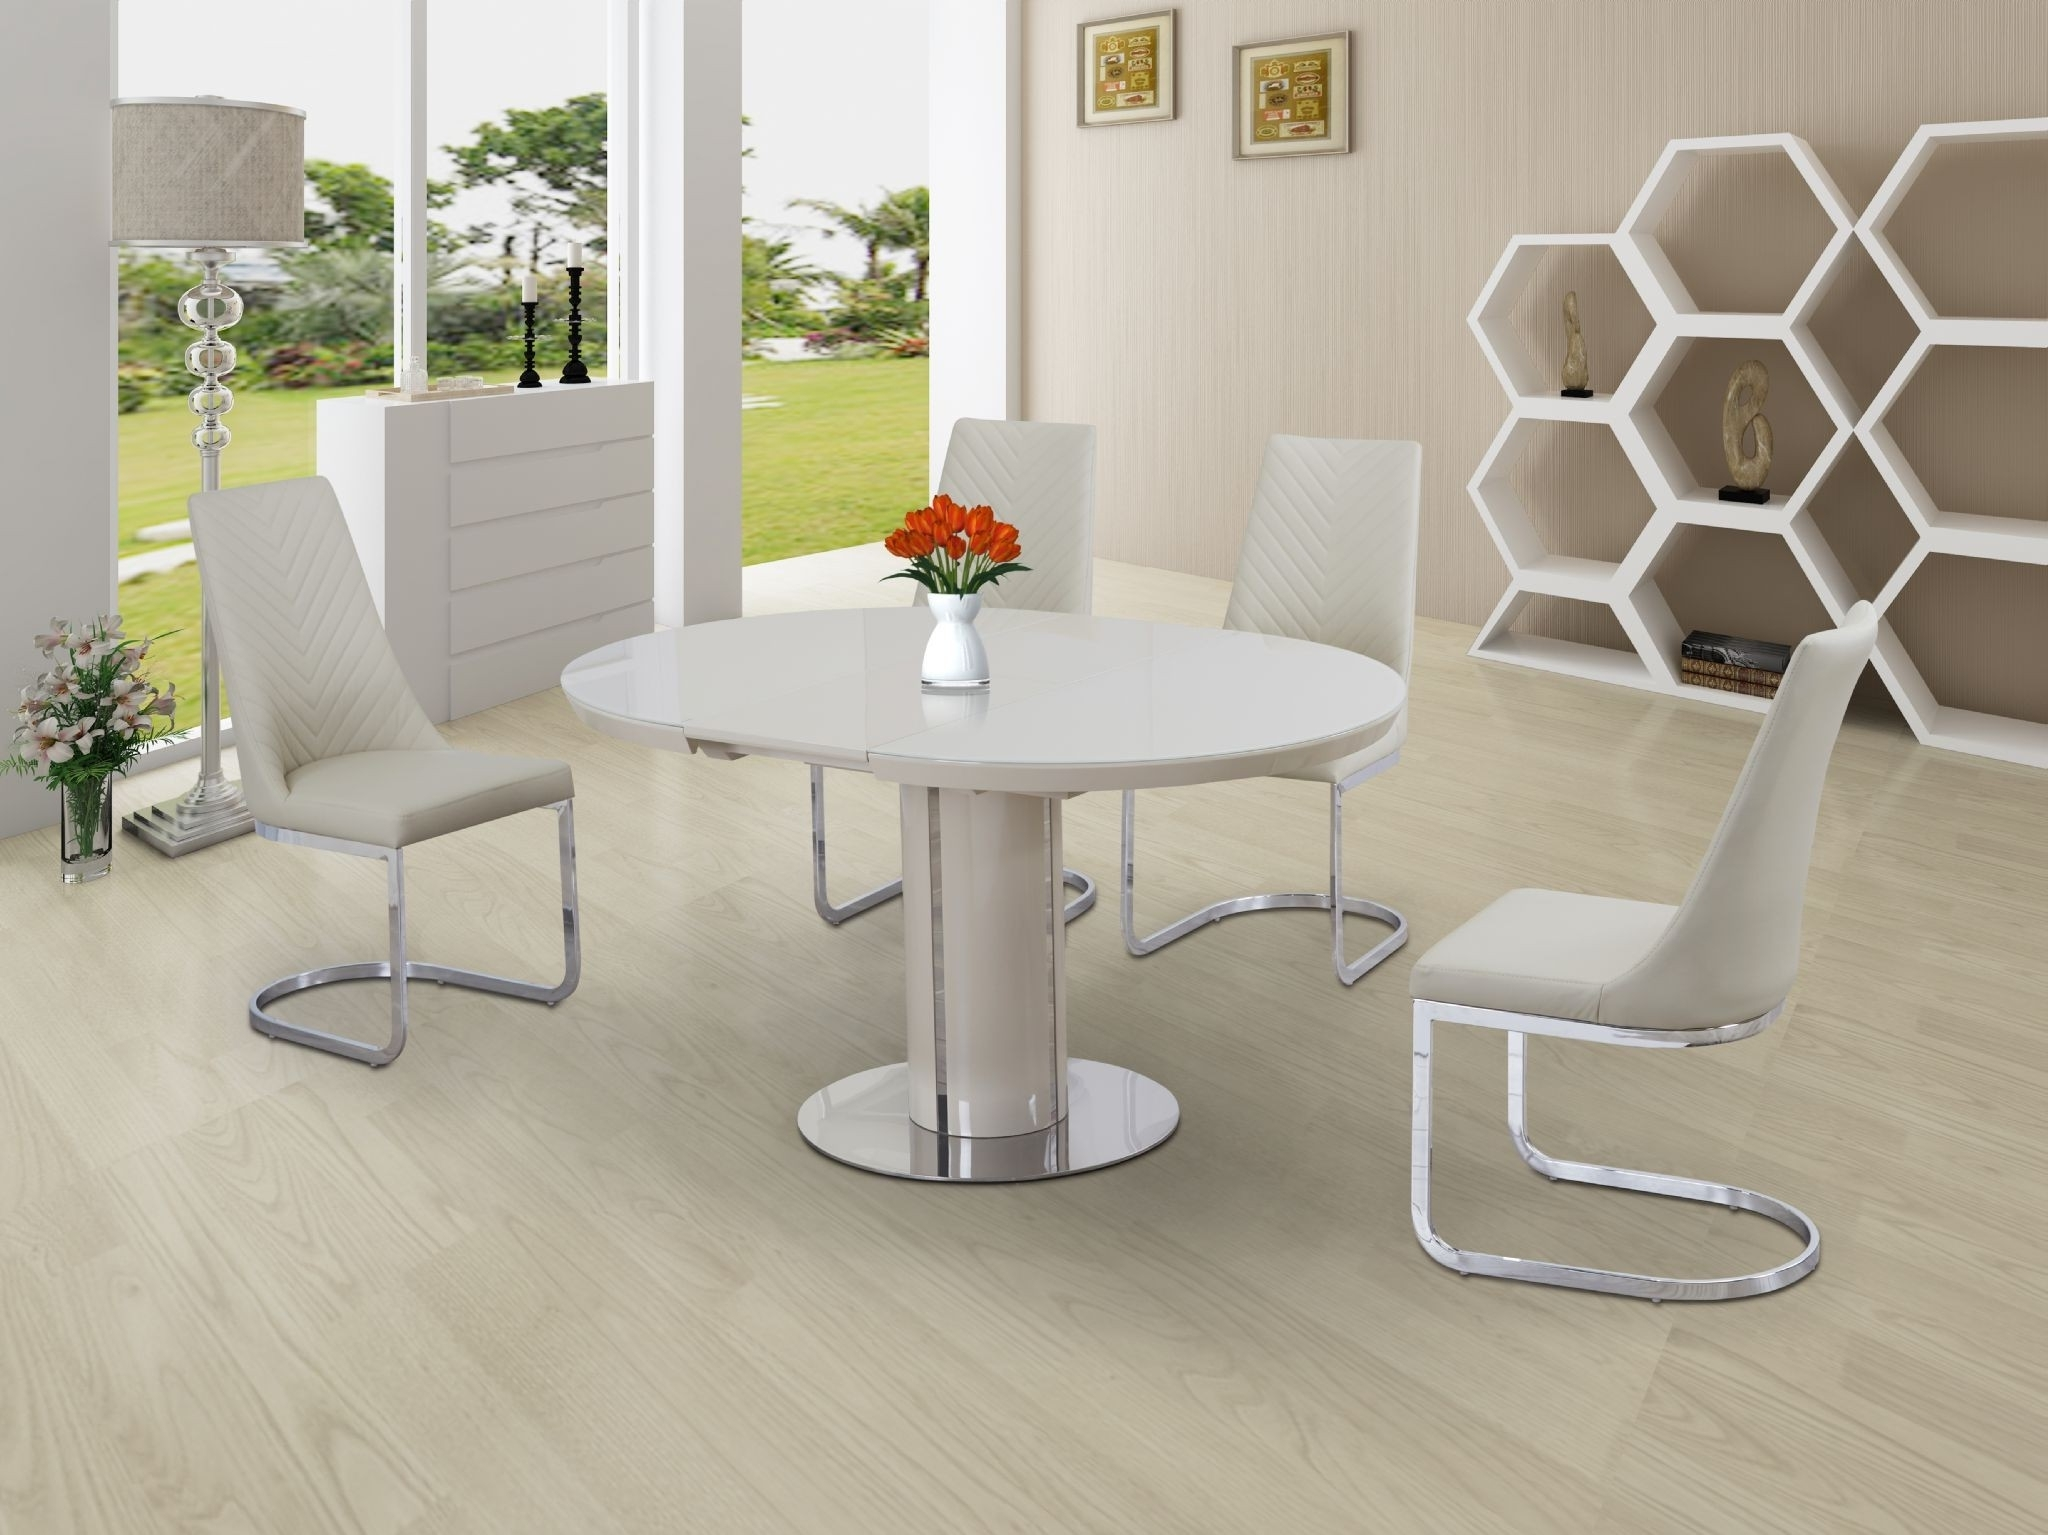 High Gloss Extending Dining Tables Regarding Recent Buy Annular Cream High Gloss Extending Dining Table (View 19 of 25)